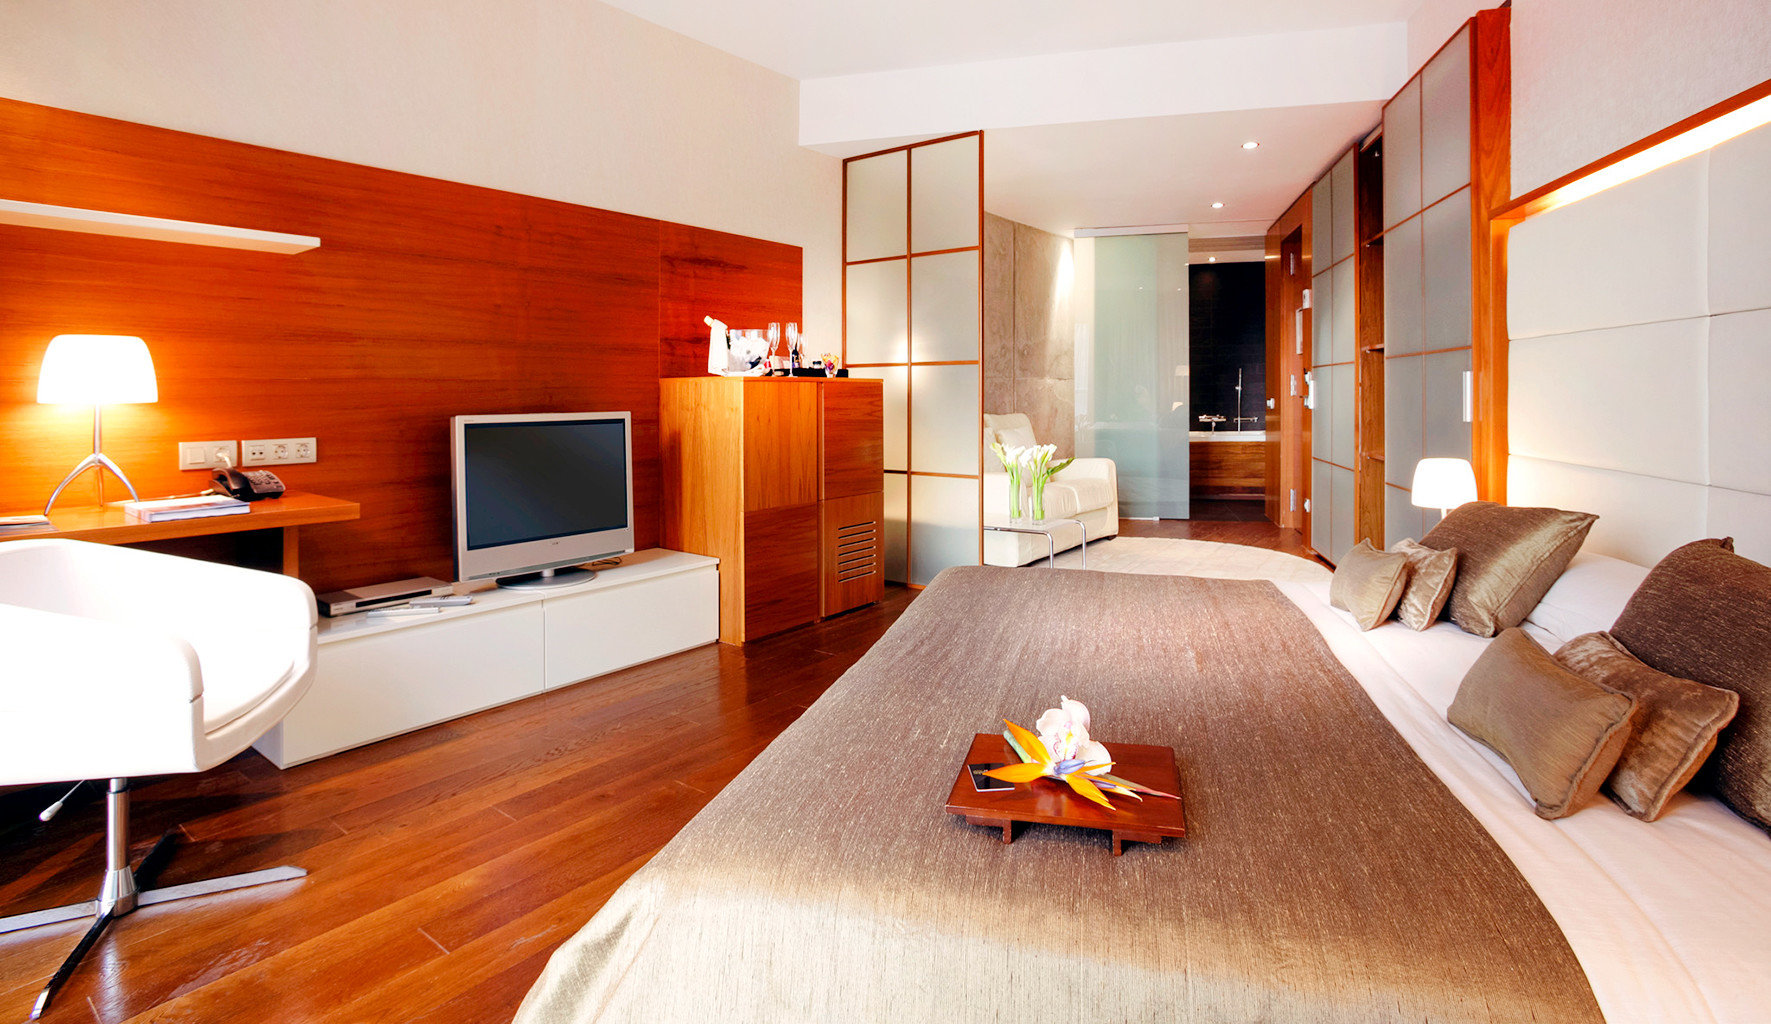 Bedroom Buildings Business City Modern Scenic views property Suite hardwood cottage living room flat